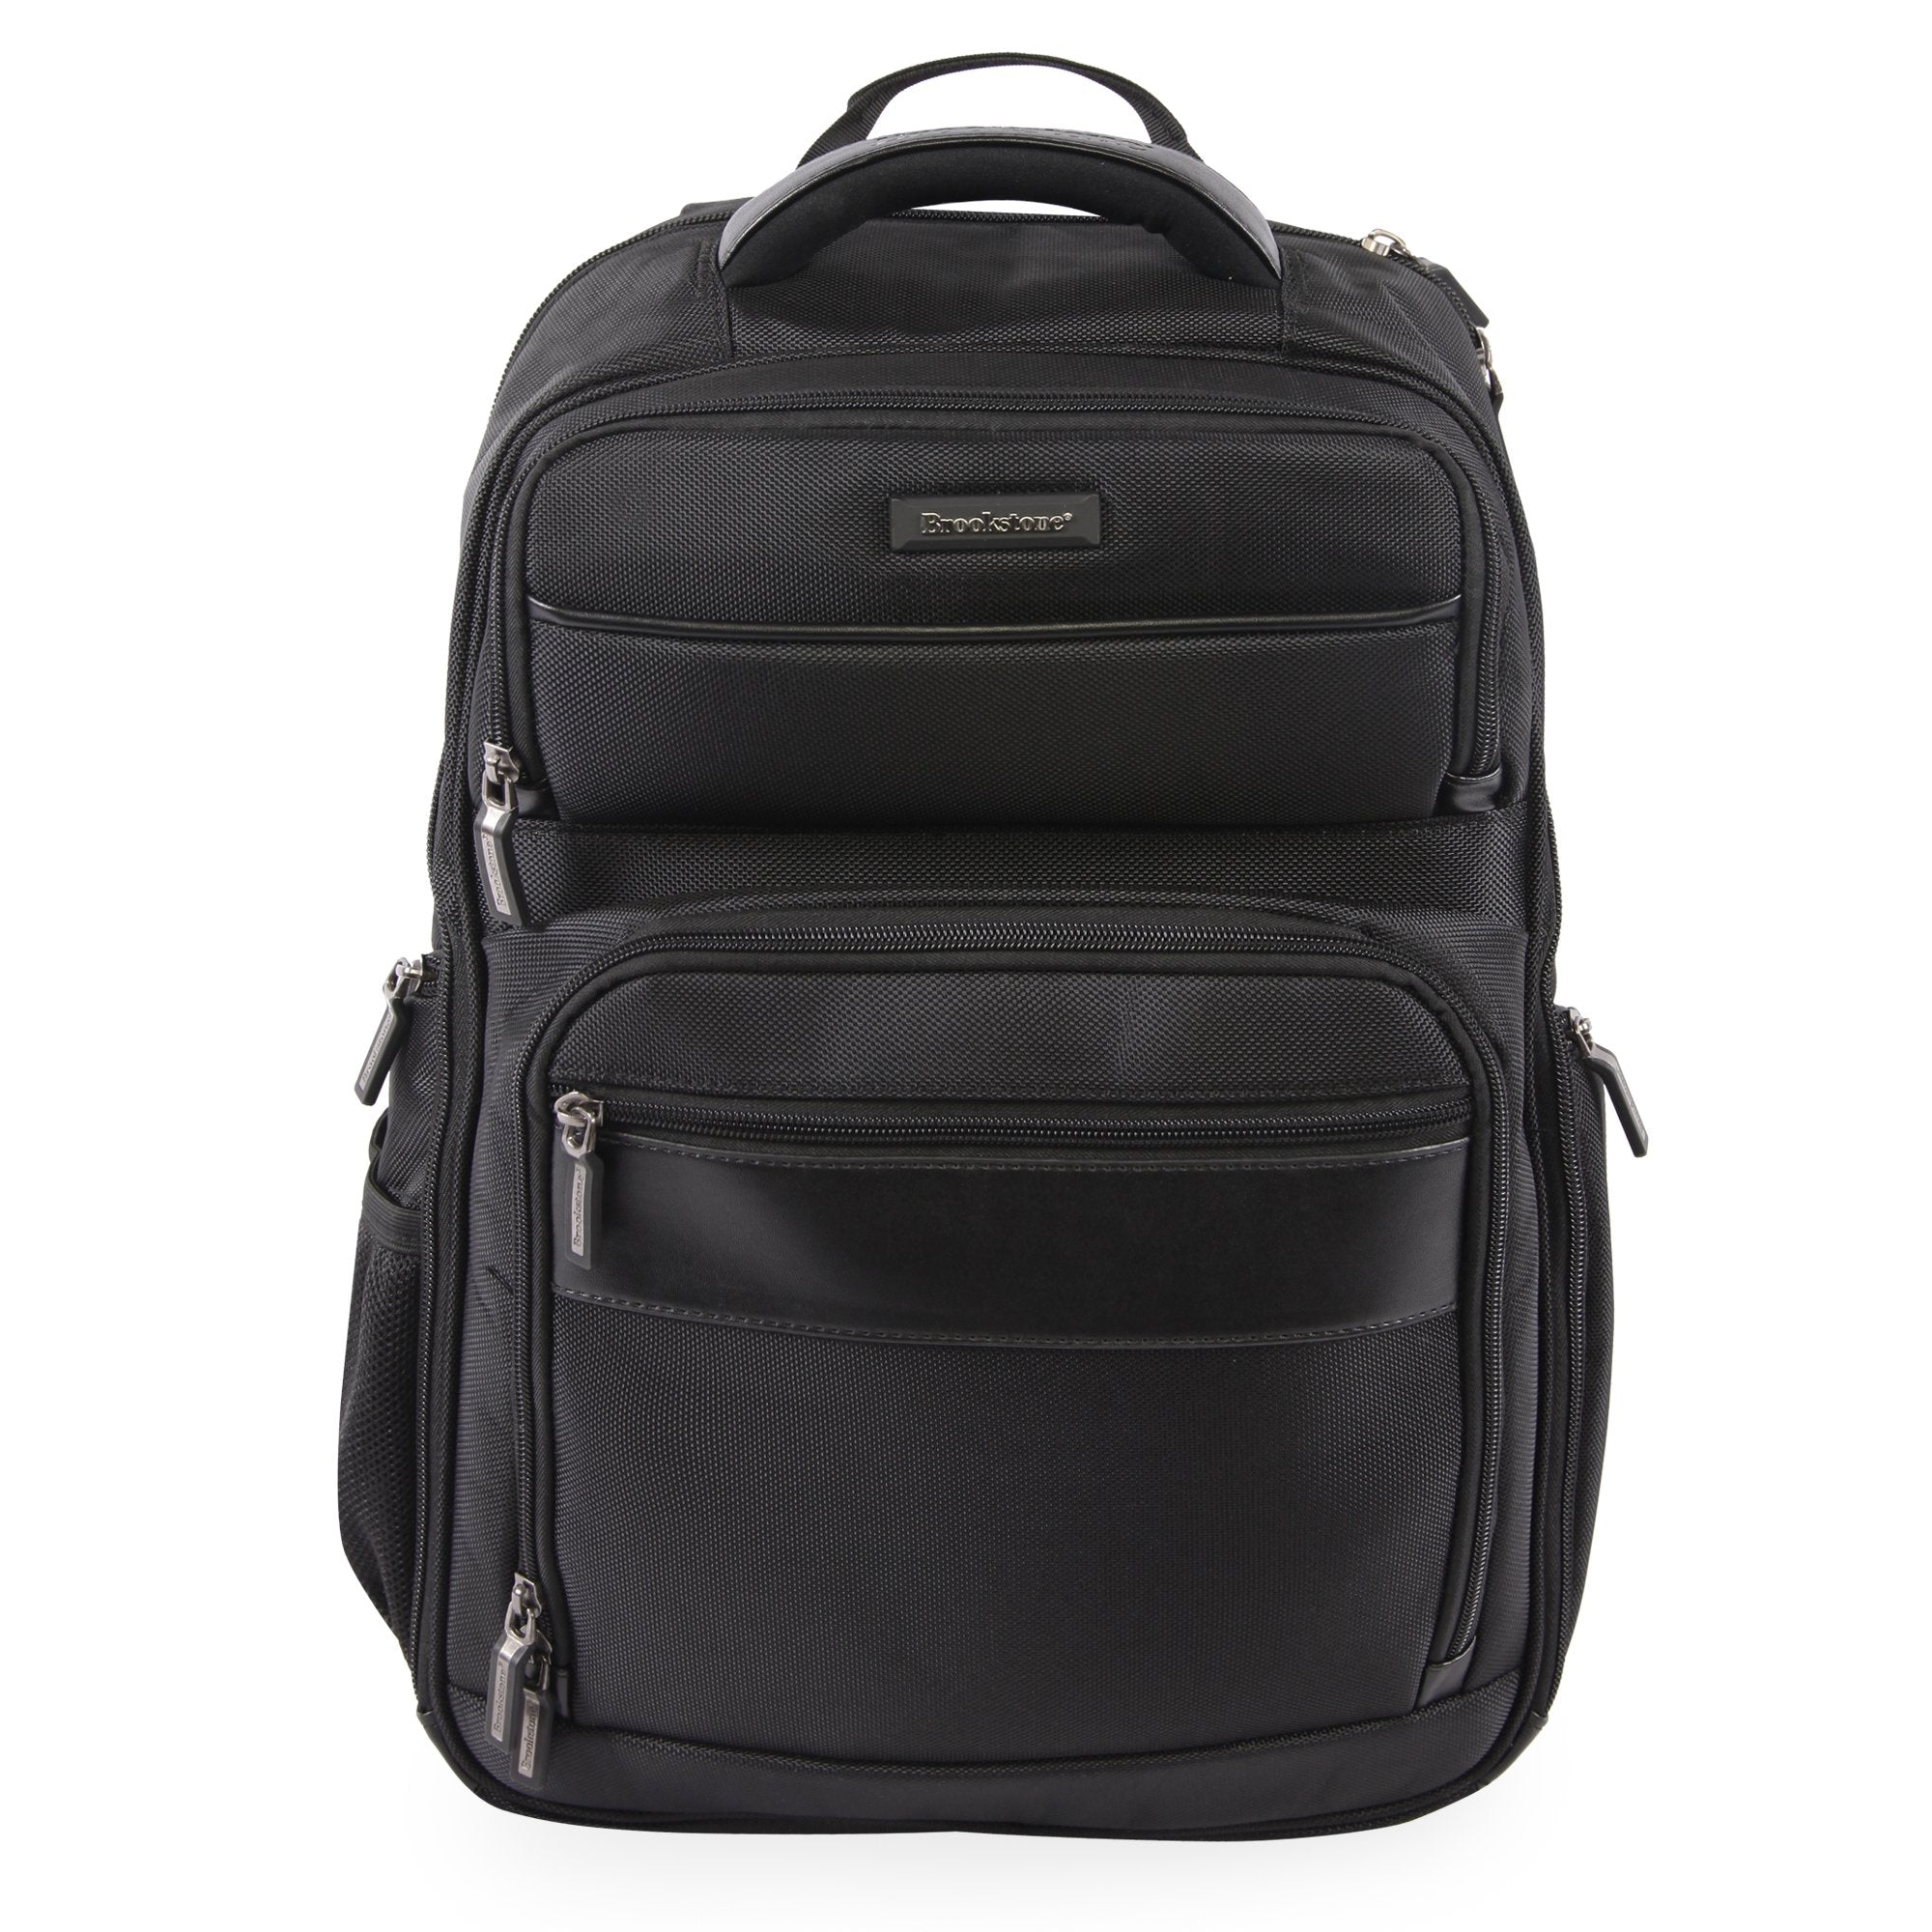 American Traveler Brookstone Bryce Laptop Backpack in Black, Size 18 Inch